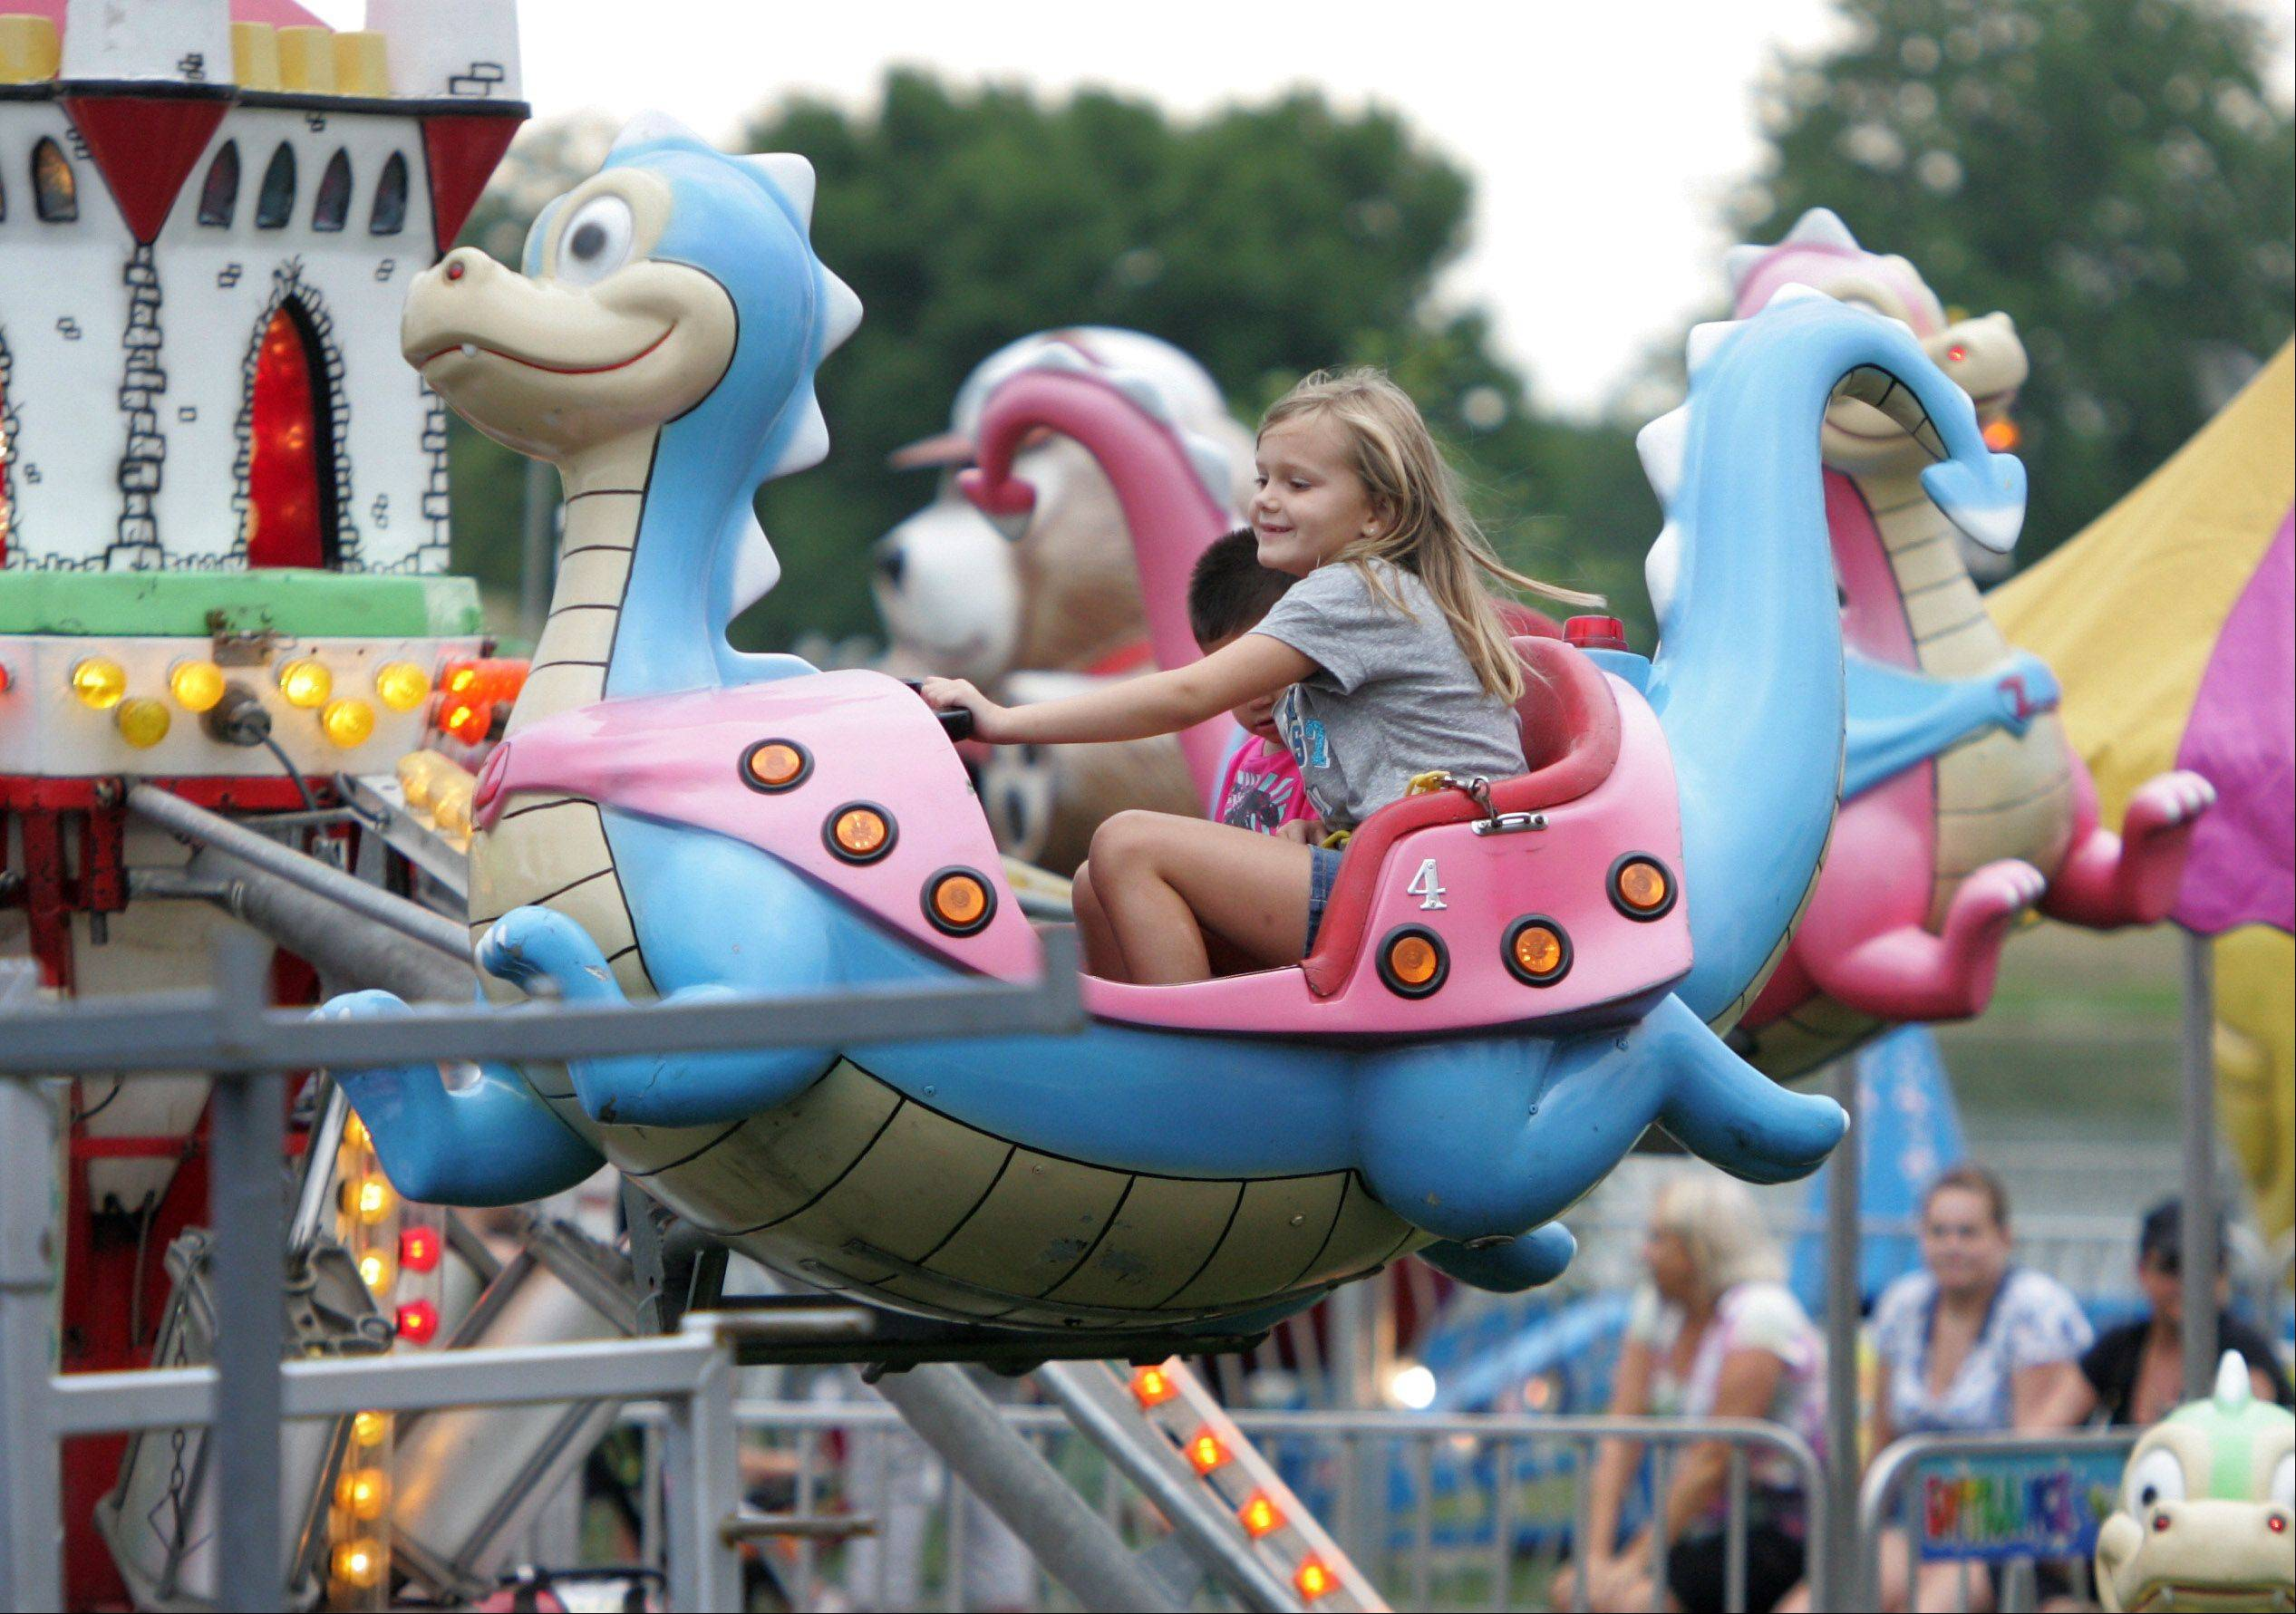 The Flying Dragons ride at last year's Summer Celebration in Vernon Hills.